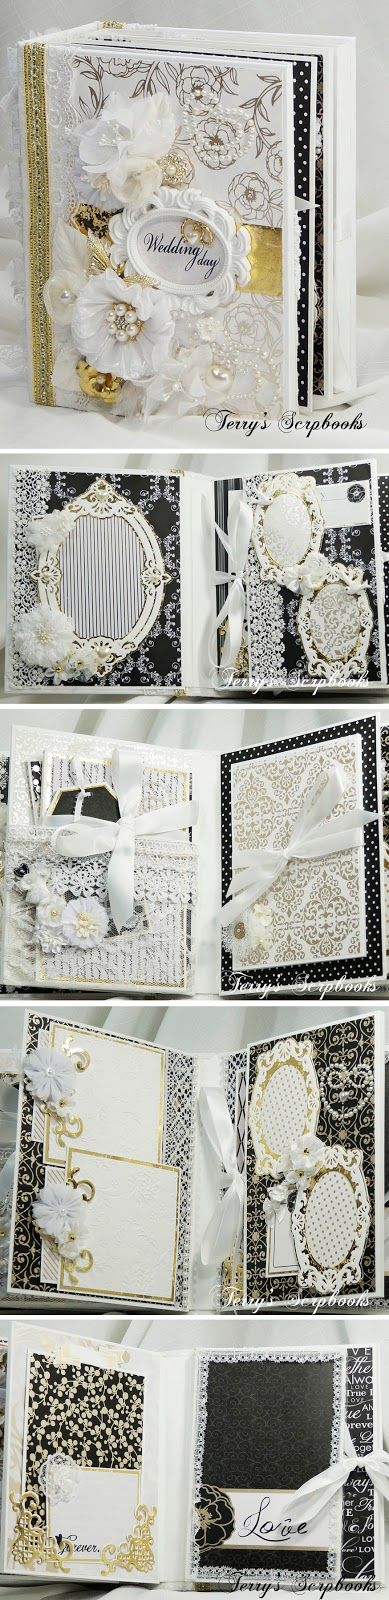 Terry's Scrapbooks: Die Cuts With A View ( DCWV ) Everlasting Love Wed...